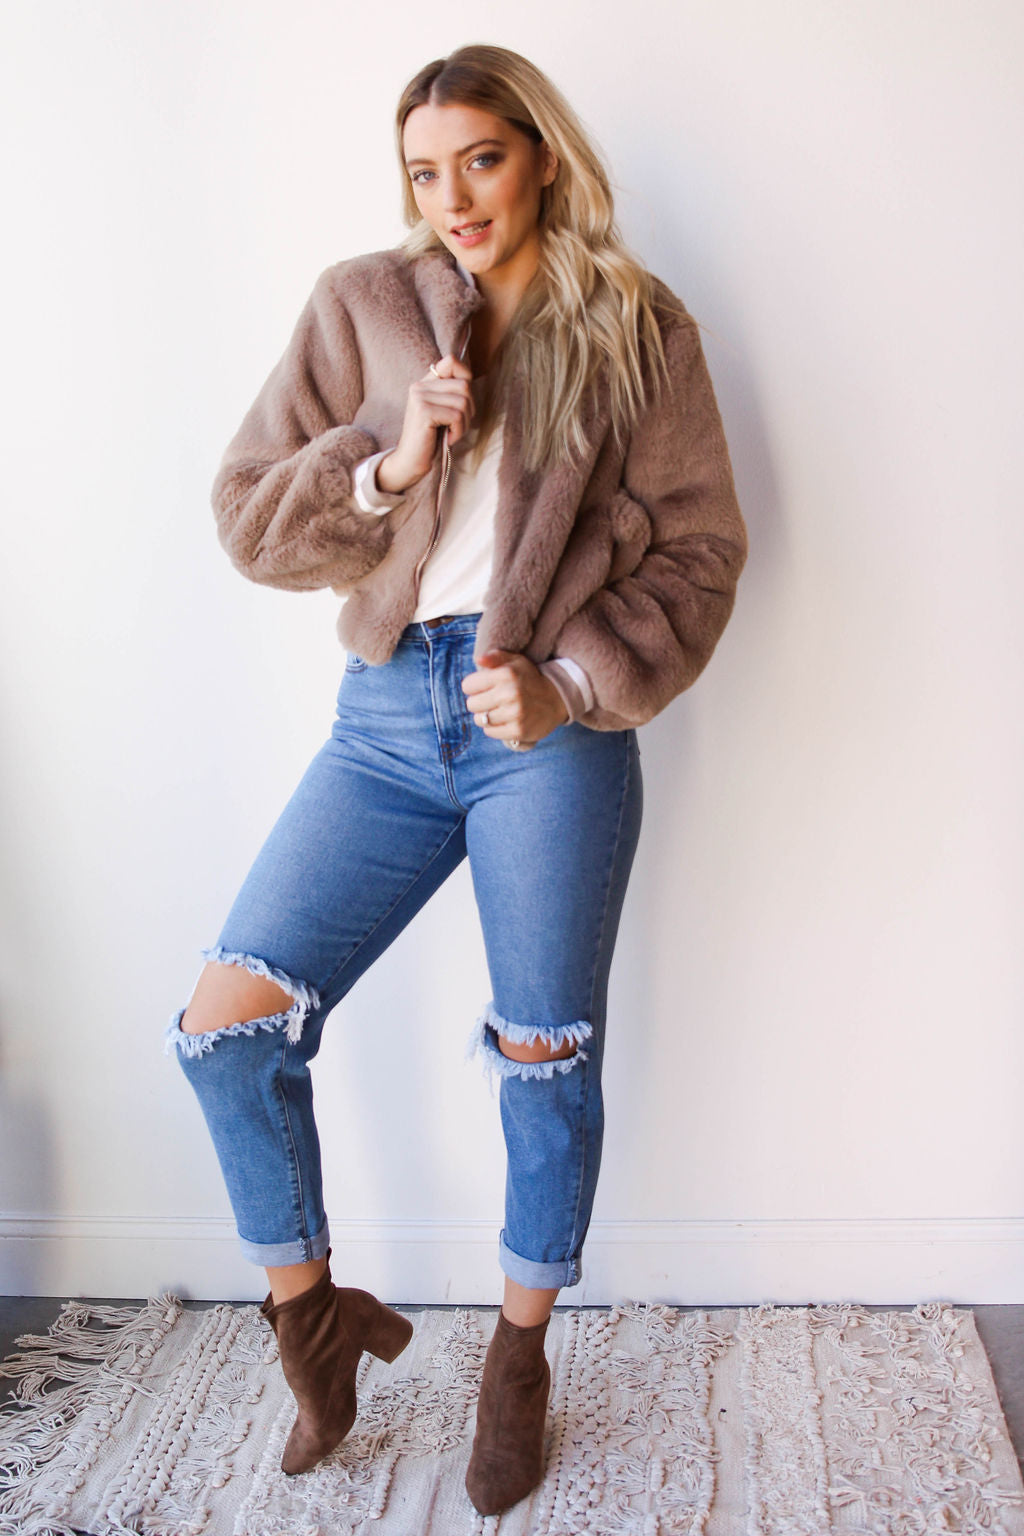 [shop name], melt my heart fur jacket